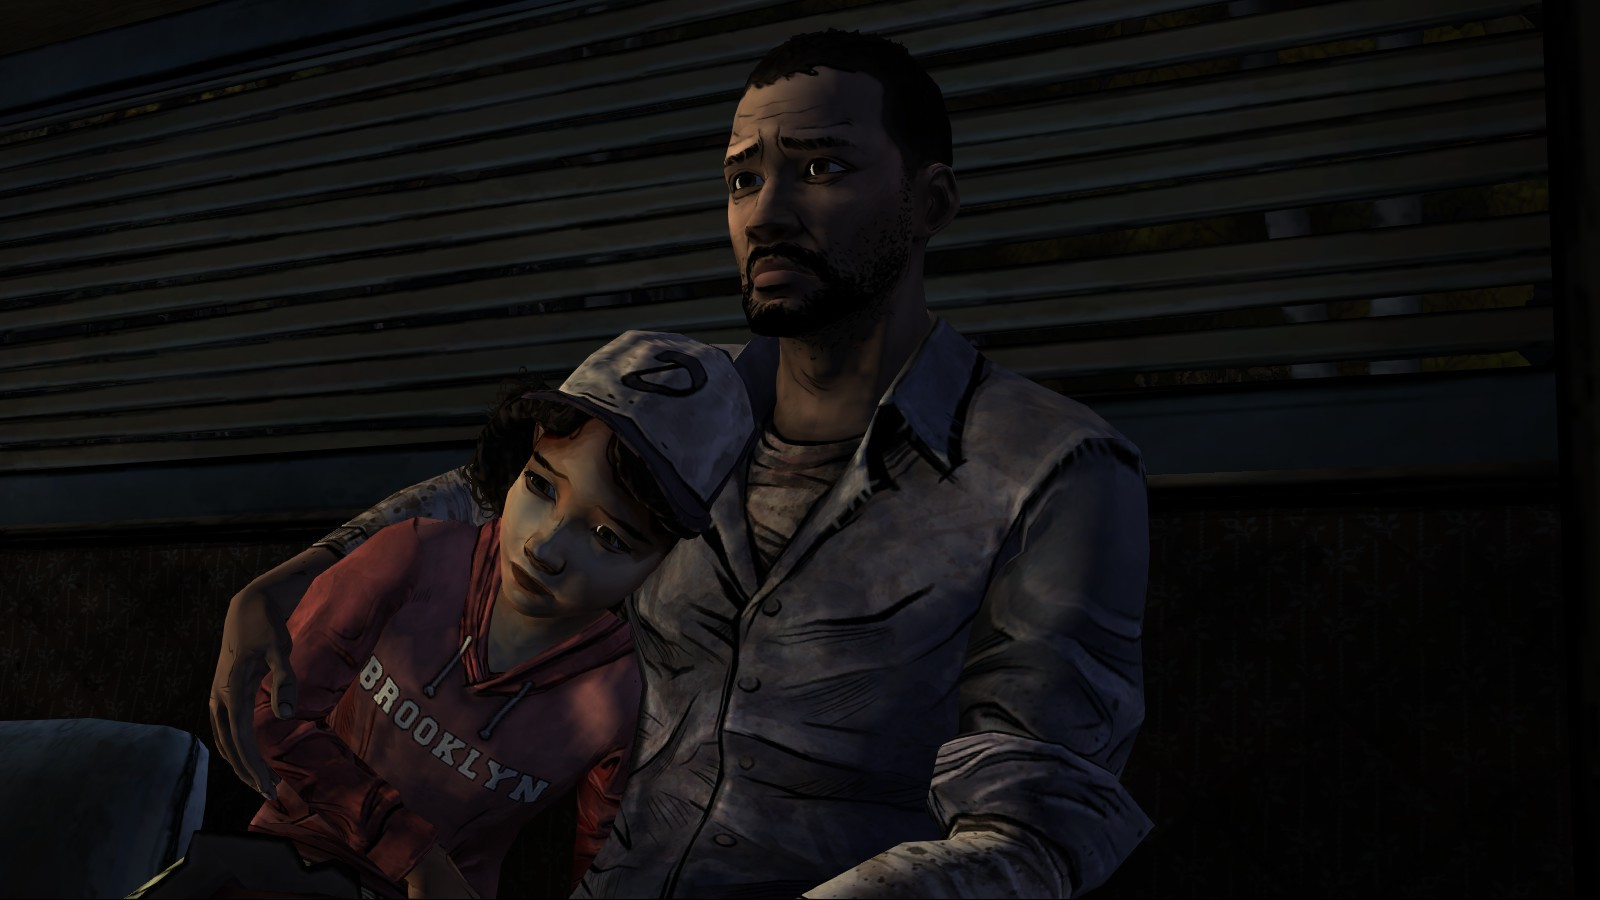 Telltale's The Walking Dead: Season 3 is starting this year